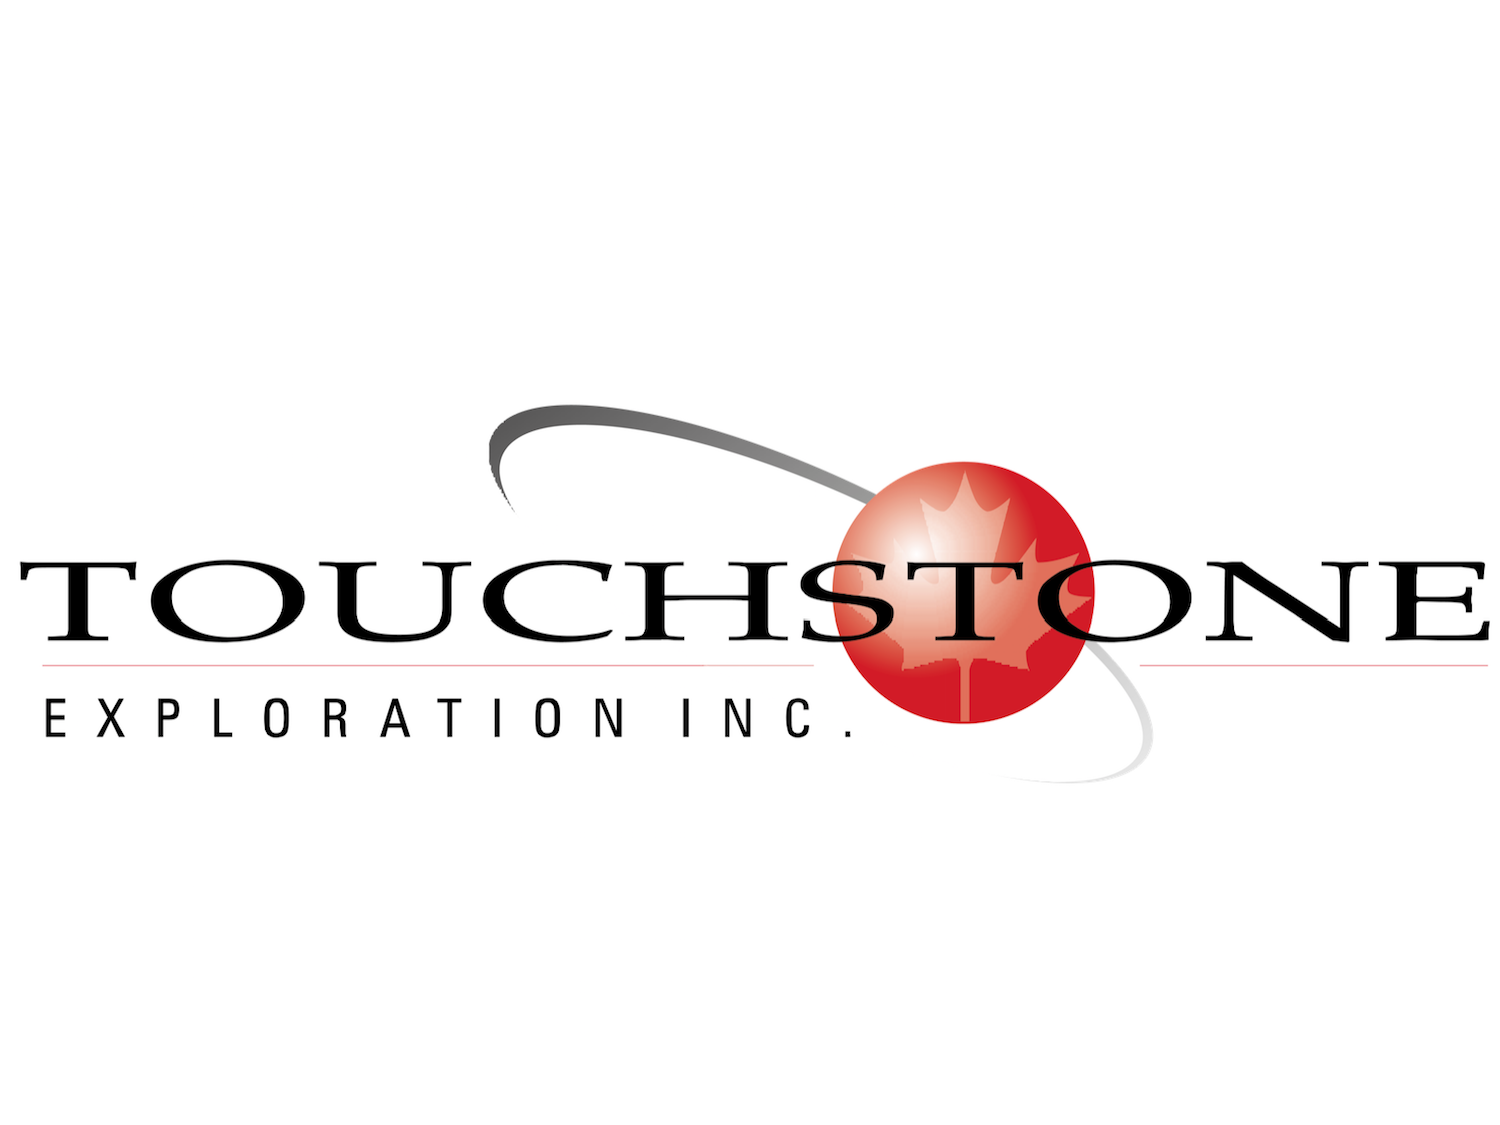 VIDEO: Touchstone Exploration's Paul Baay runs through firm's bright future following strong start at Ortoire in exclusive presentation (TXP)